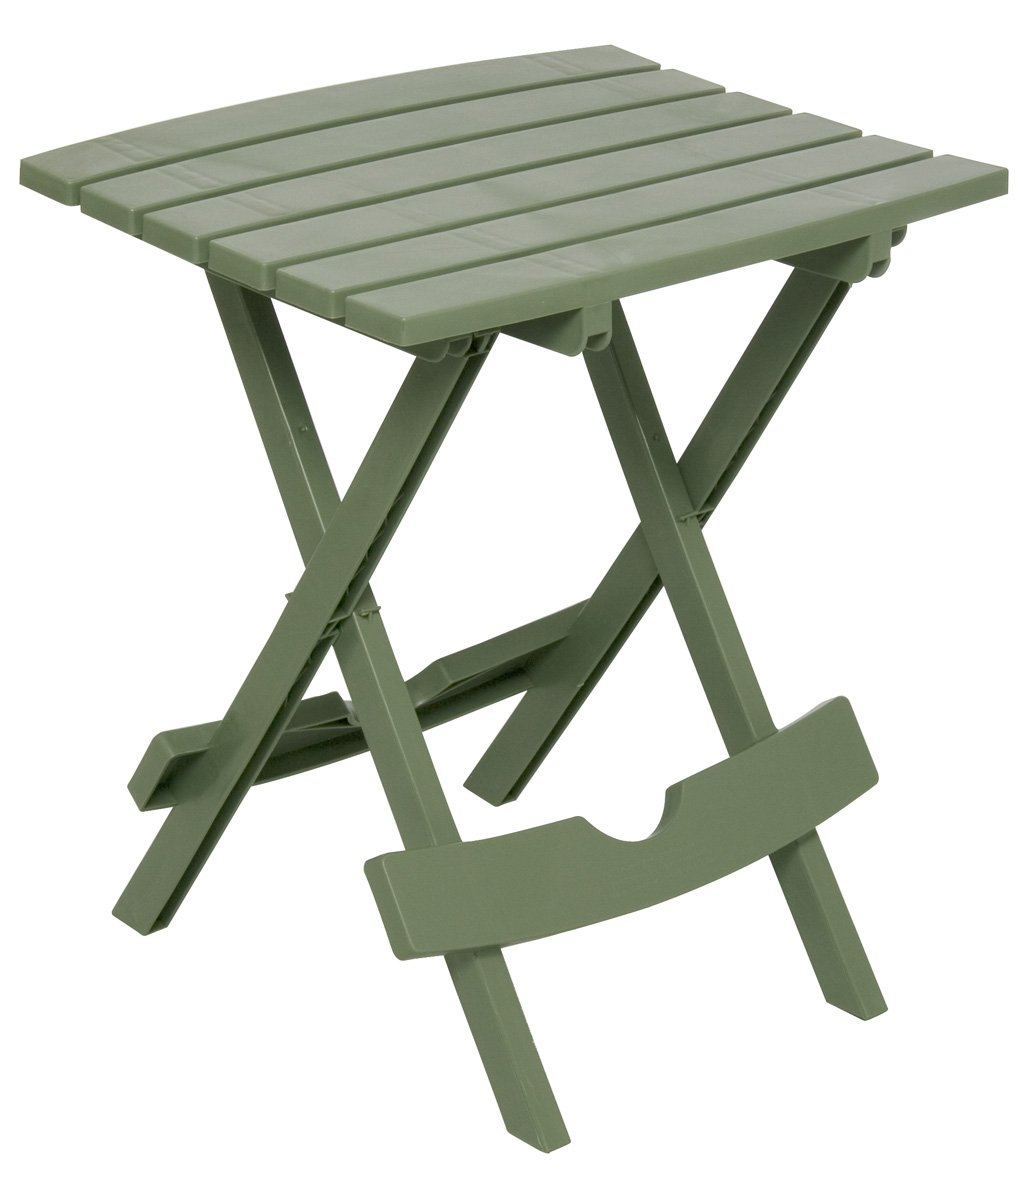 Adams Manufacturing 8500-01-3700 Plastic Quik-Fold Side Table, Sage by Adams Manufacturing